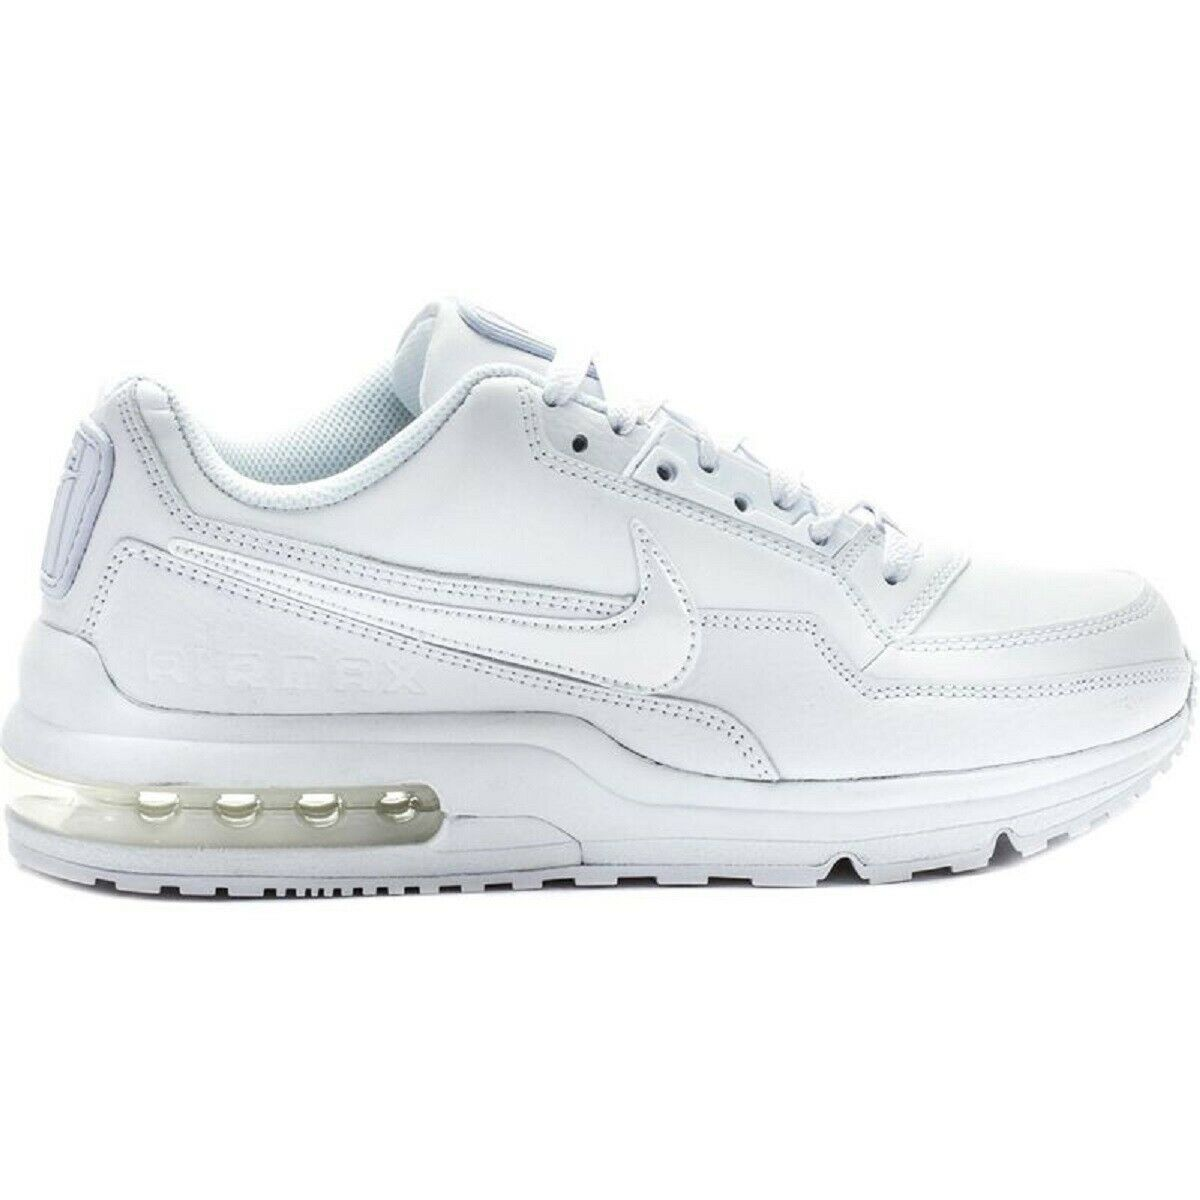 NIKE Air Max LTD 3 Weiß Bianco Turnschuhe schuhe Ginnastica herren Man Leather Pell